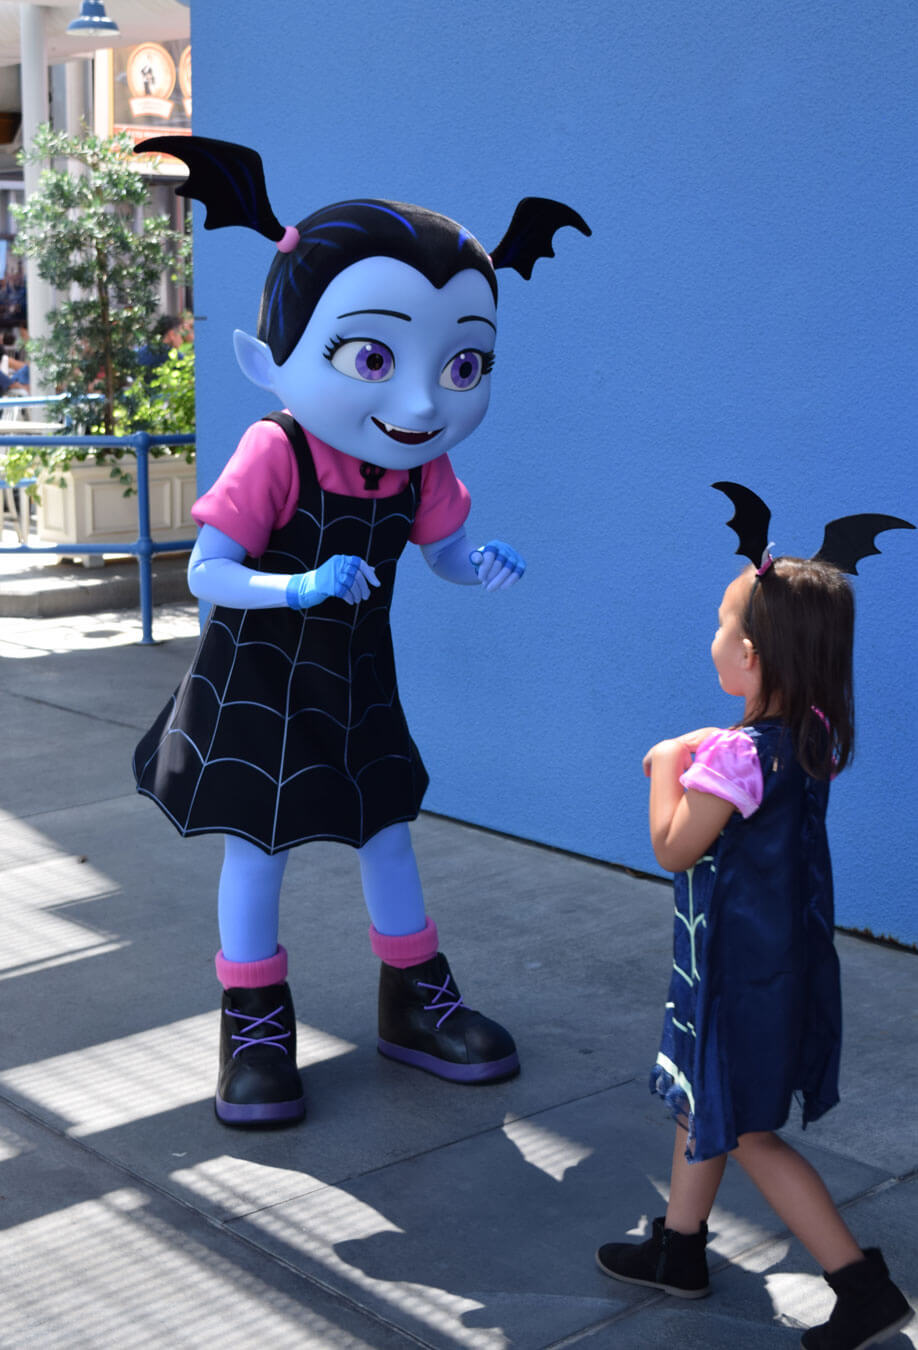 Disneyland Halloween Time 2018 - Vampirina at Disney California Adventure - What Opened at Disneyland and Universal in 2018